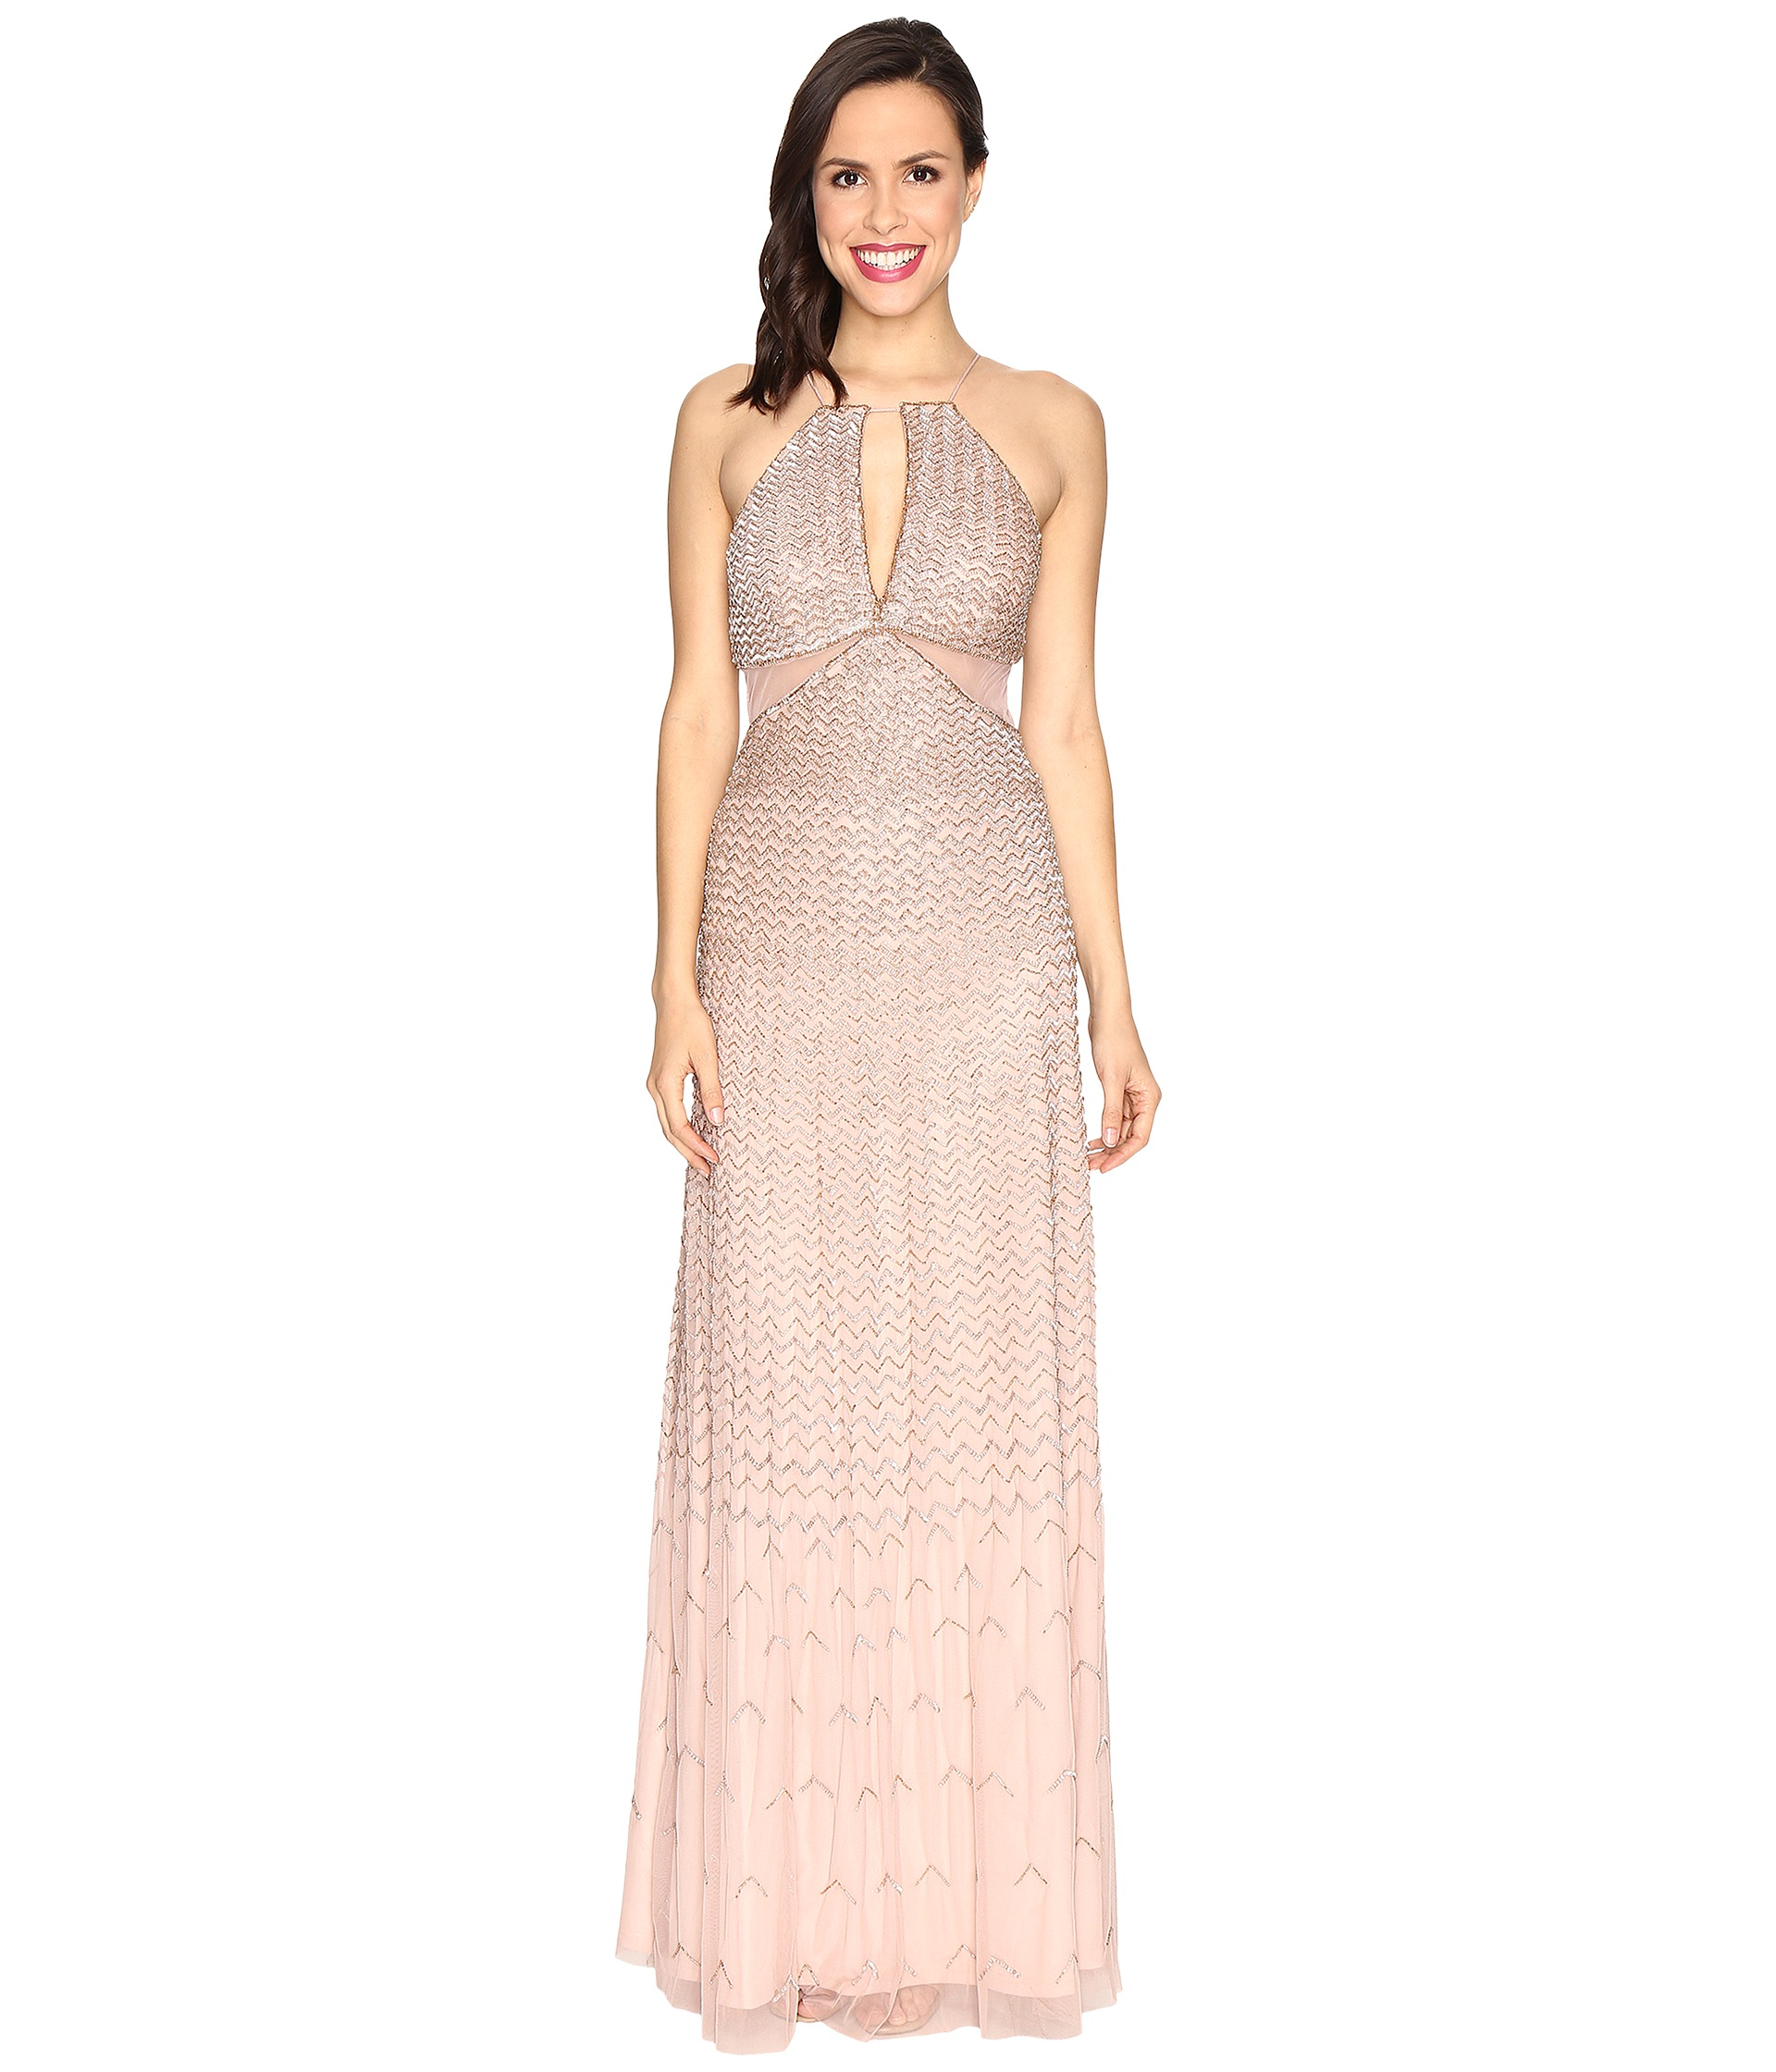 Adrianna Papell Strappy Halter Fully Beaded Gown with Side Mesh Cut Outs and CF Keyhole